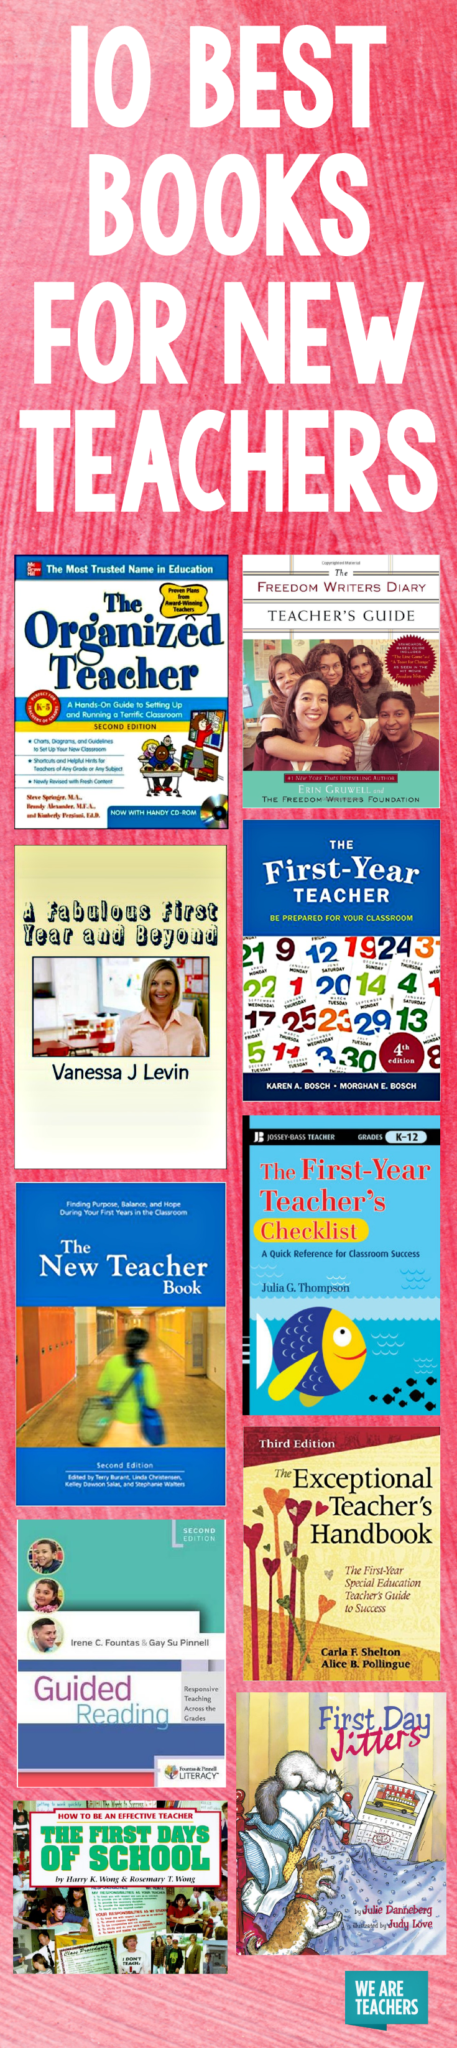 10 Best Books for New Teachers - WeAreTeachers